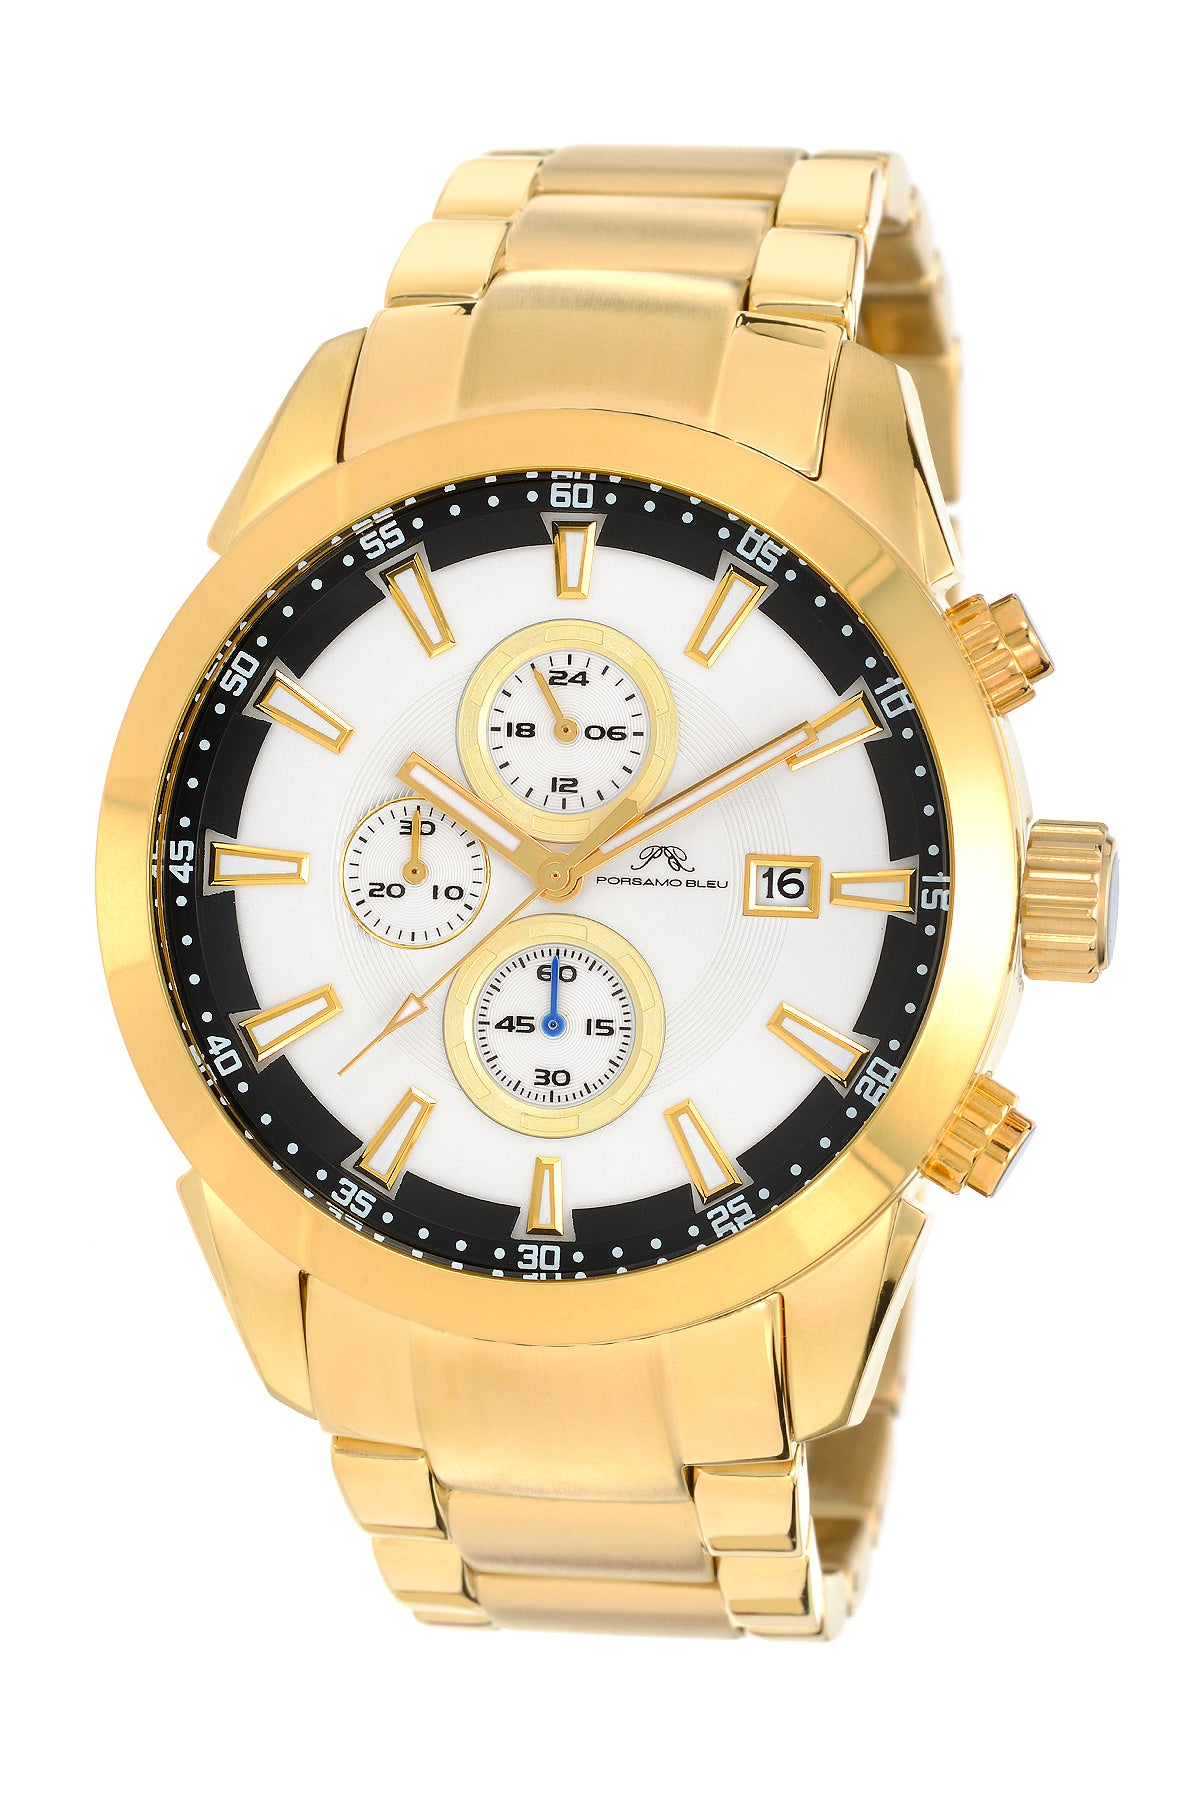 Porsamo Bleu Enzo luxury chronograph men's stainless steel watch, gold 451BENS